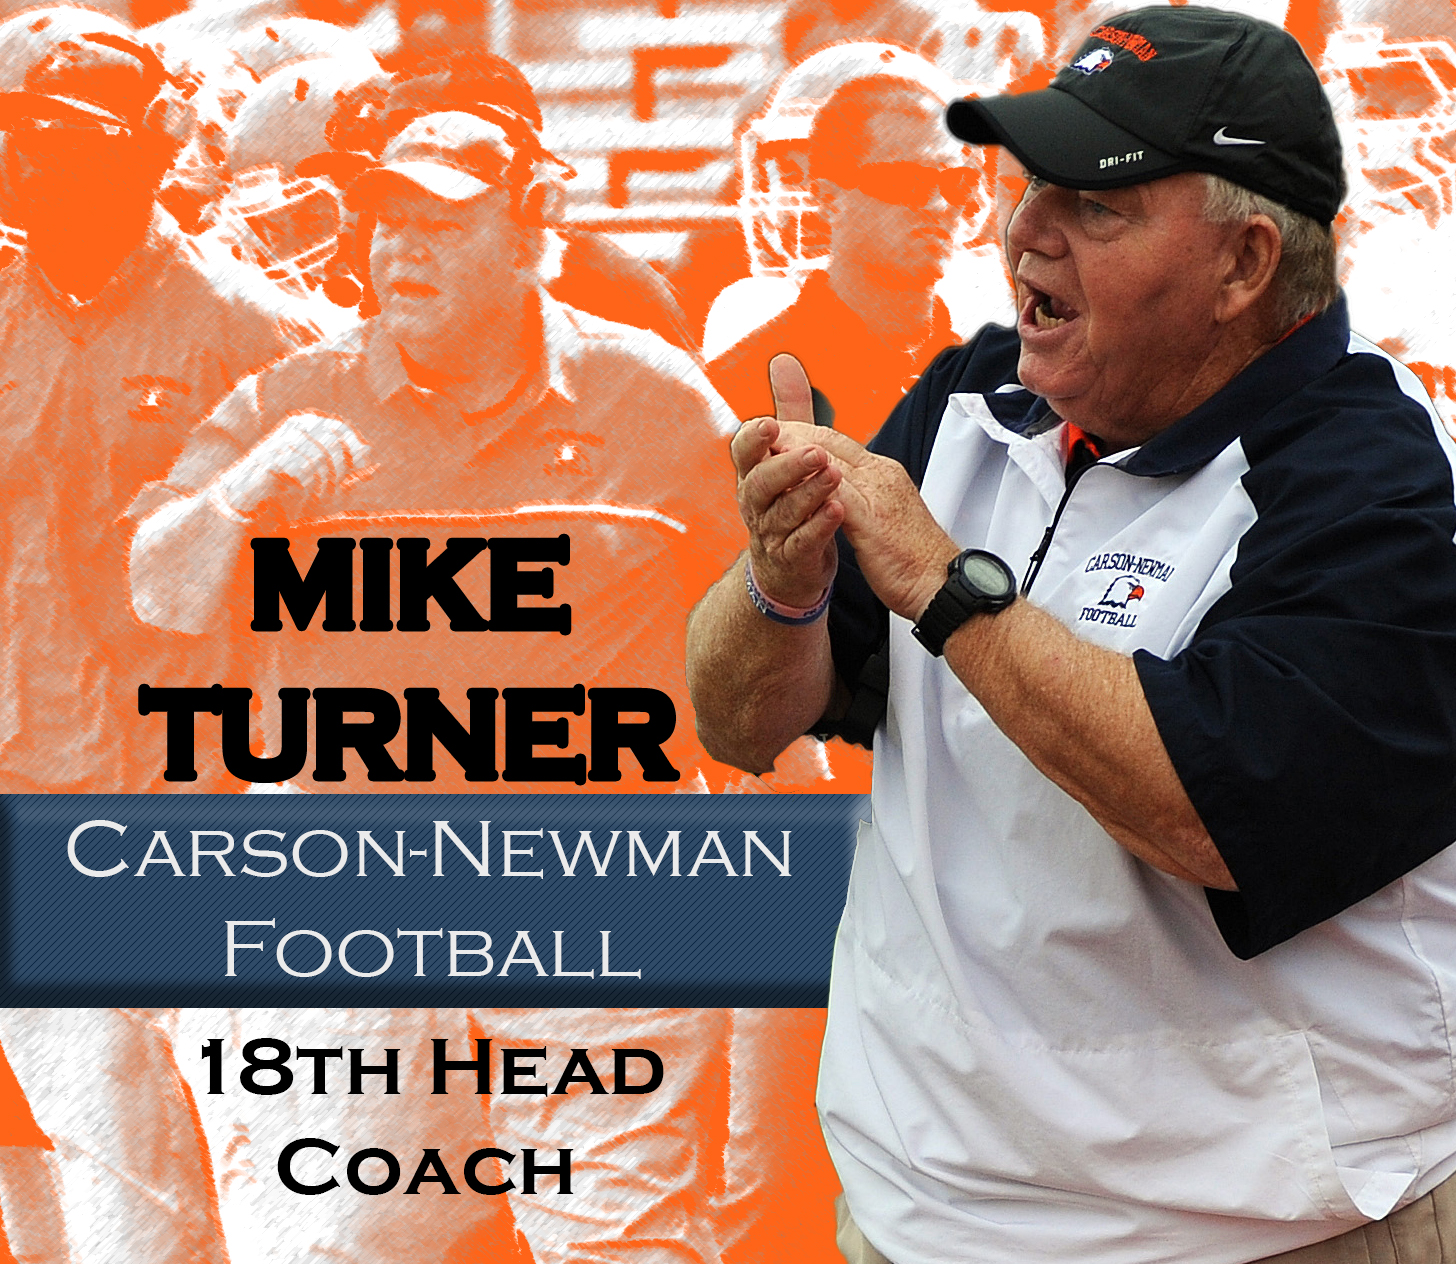 Turner tabbed as Carson-Newman football's 18th head coach